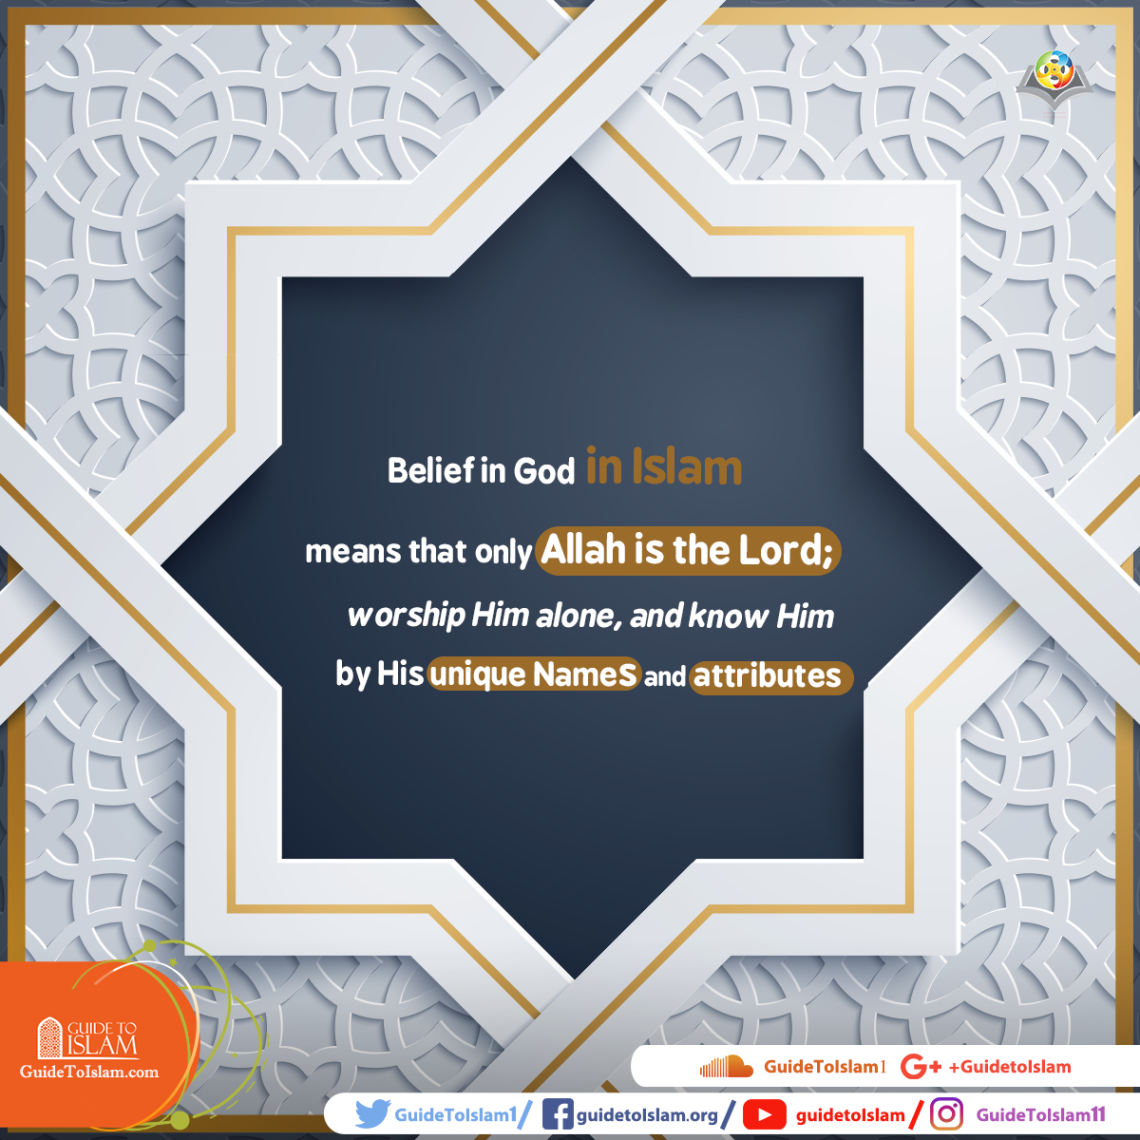 Belief in God in Islam